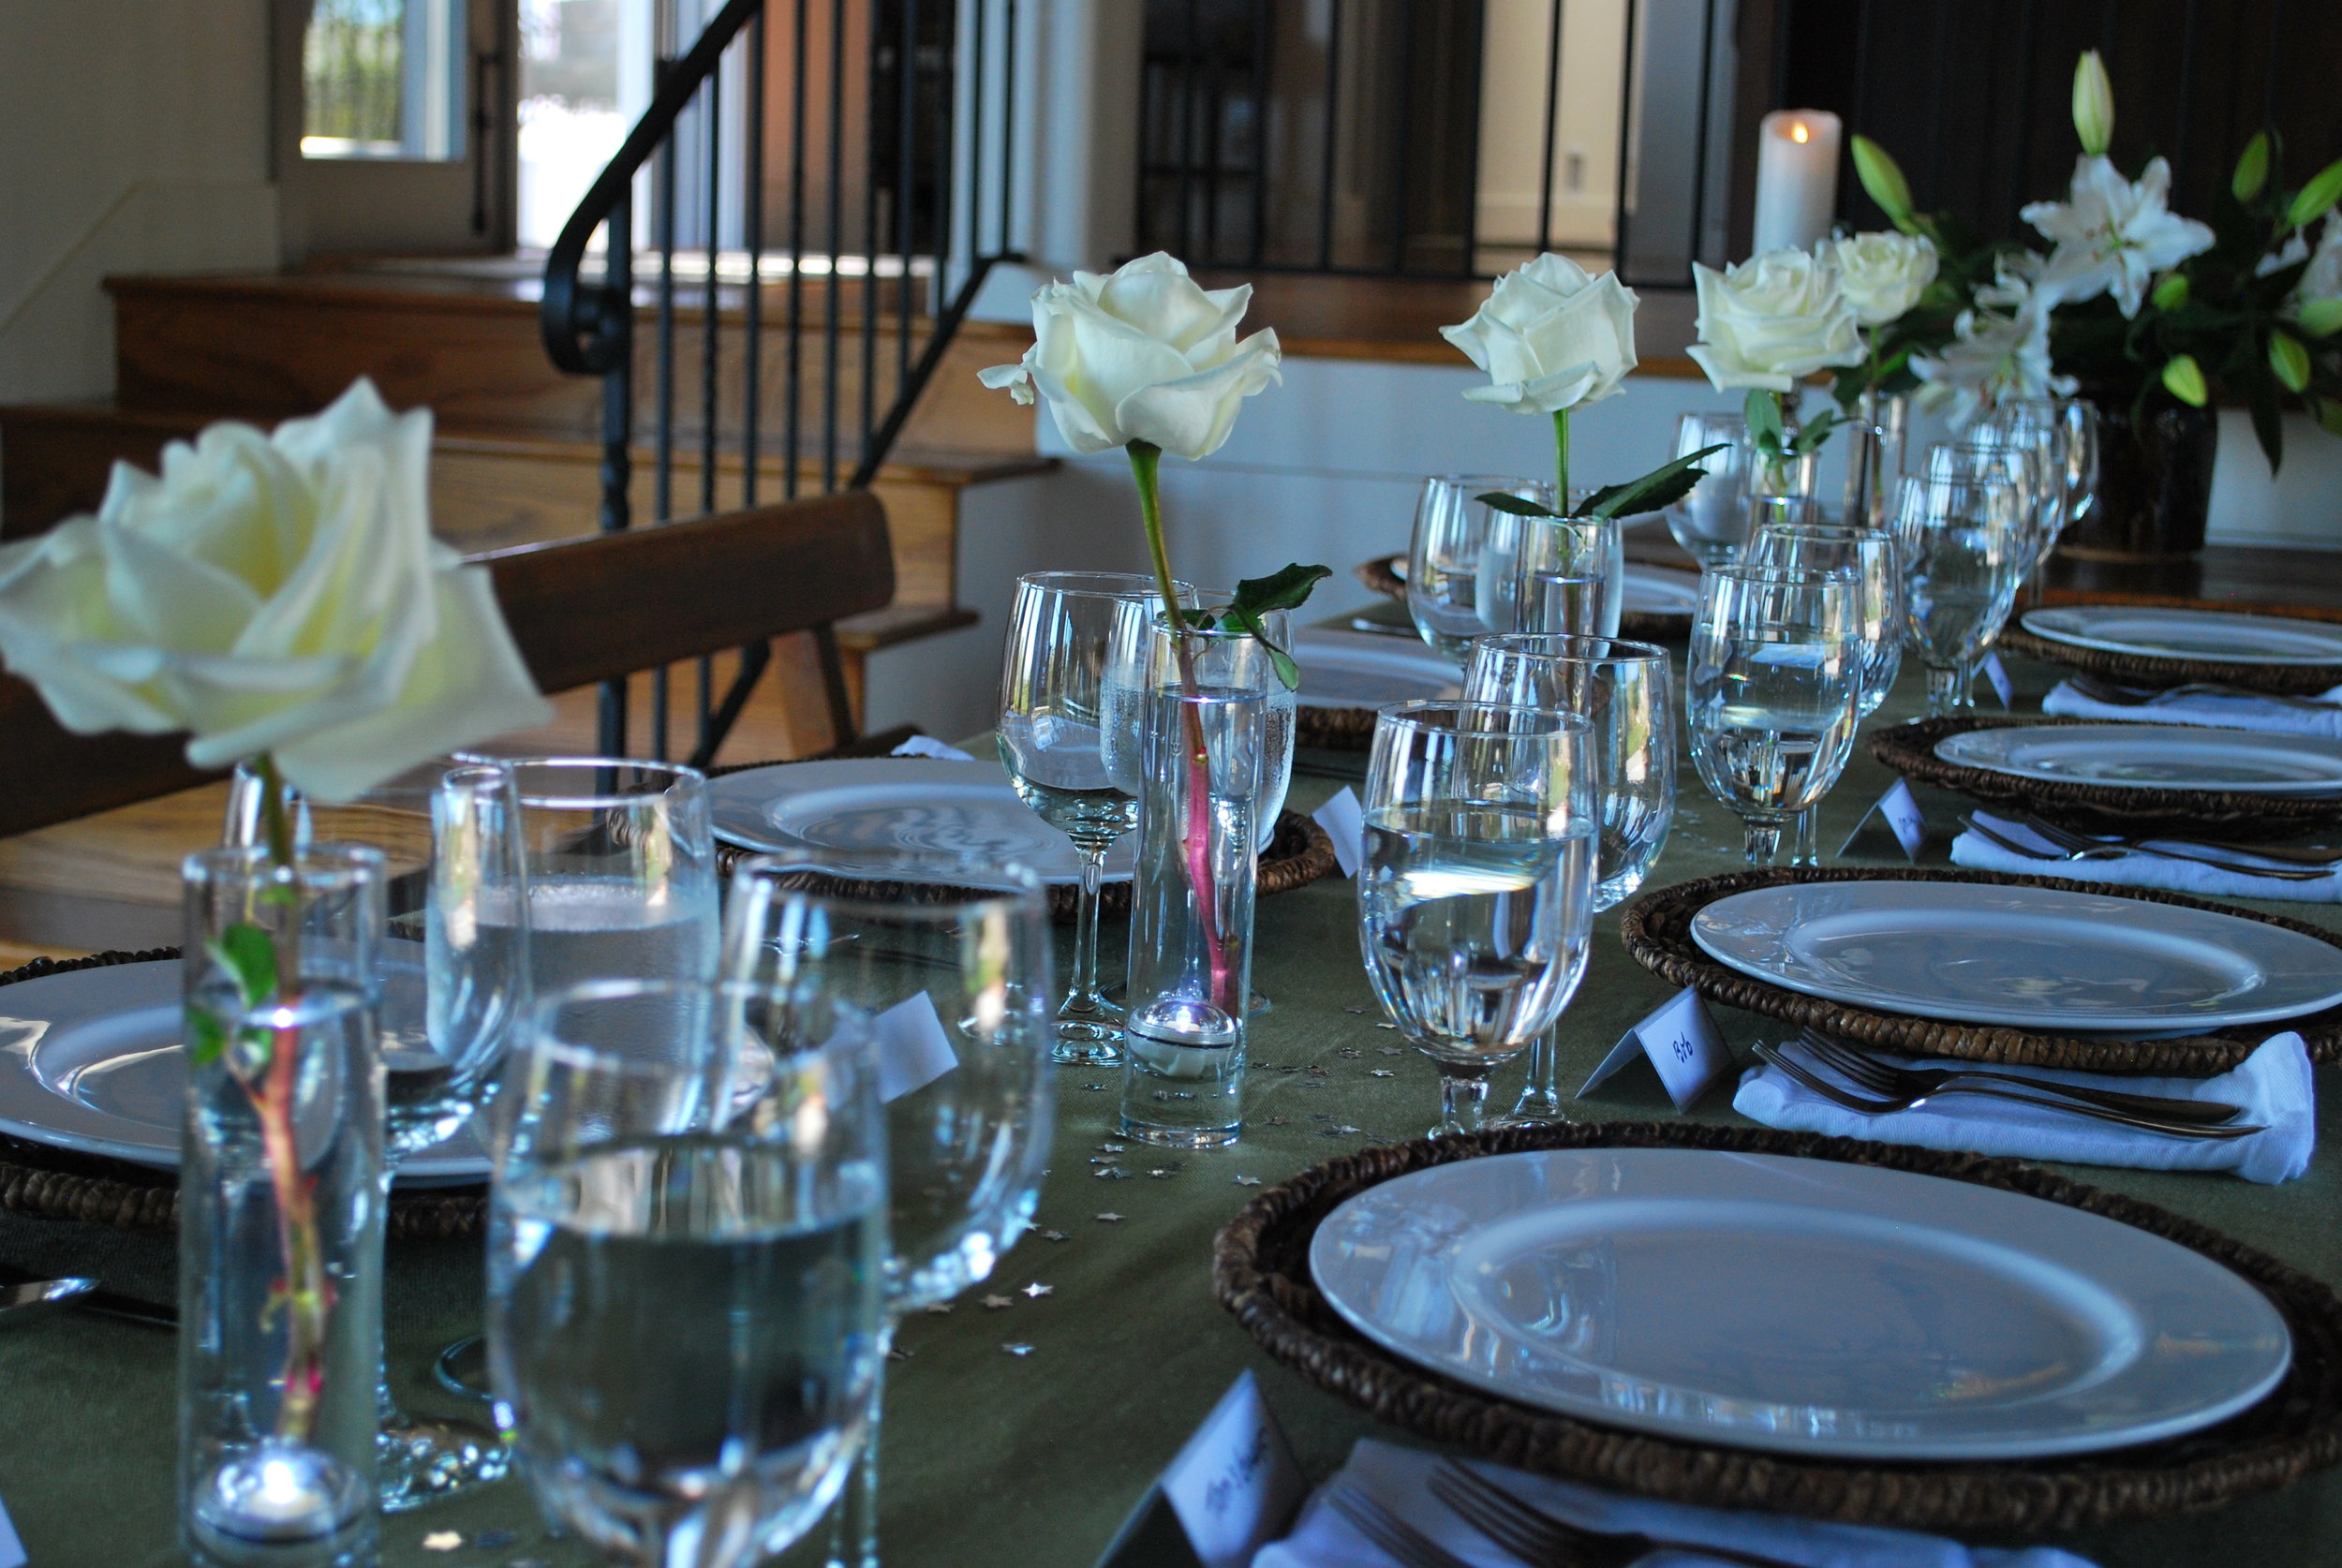 The Table is Set for Cooking Classes This Fall!